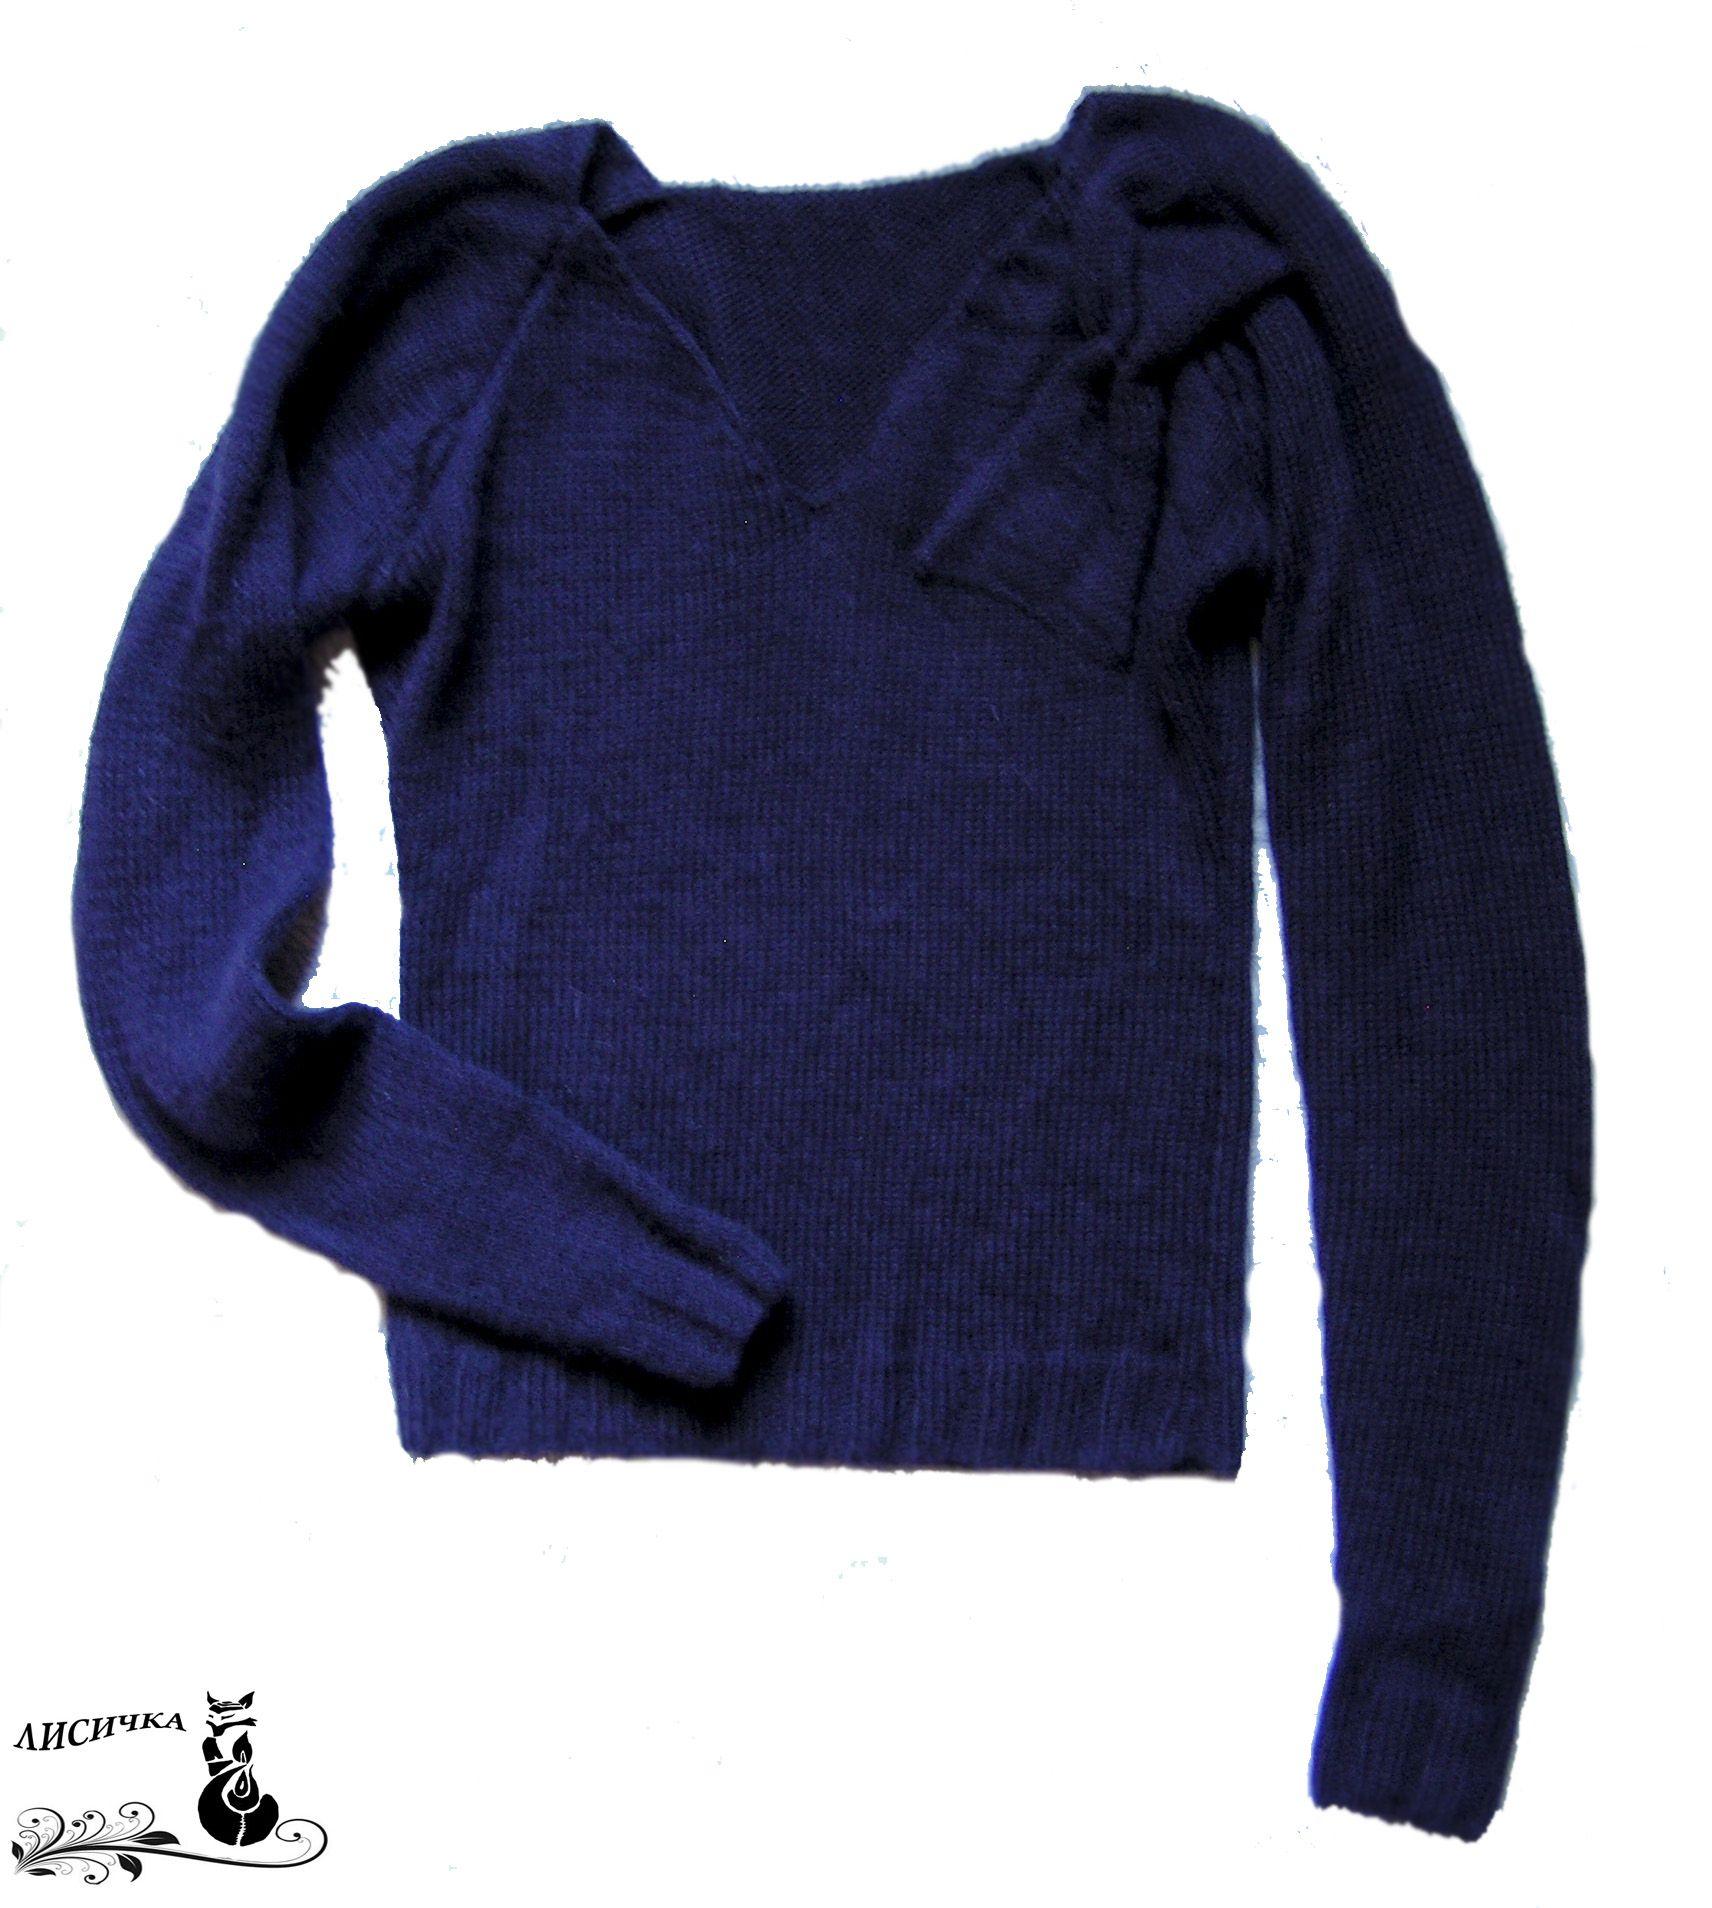 clothes wool winter blue sweater knitting